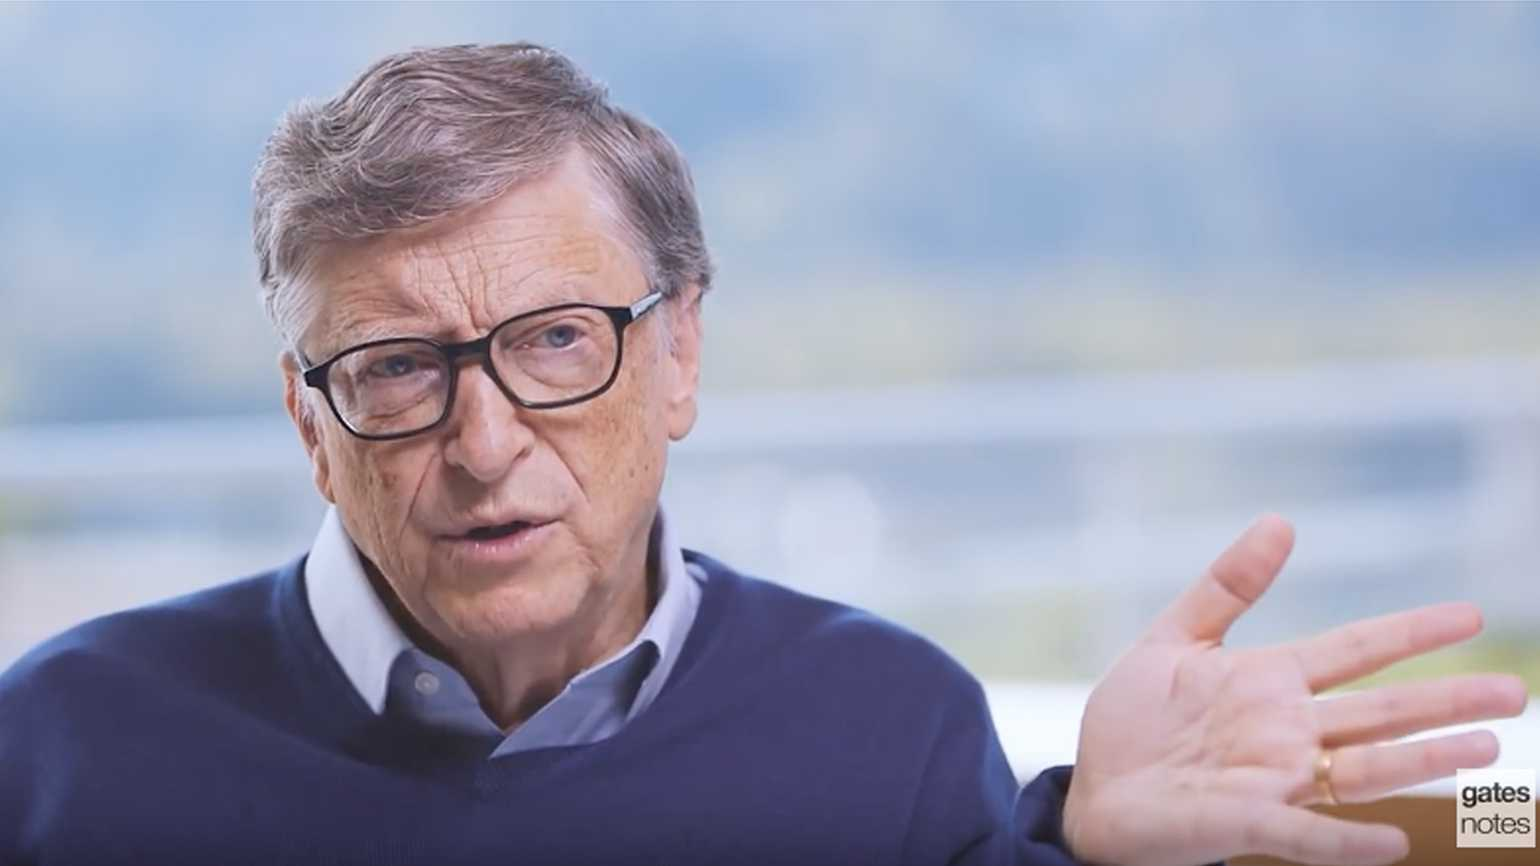 Bill Gates Invests $100 Million to Fight Alzheimer's Disease